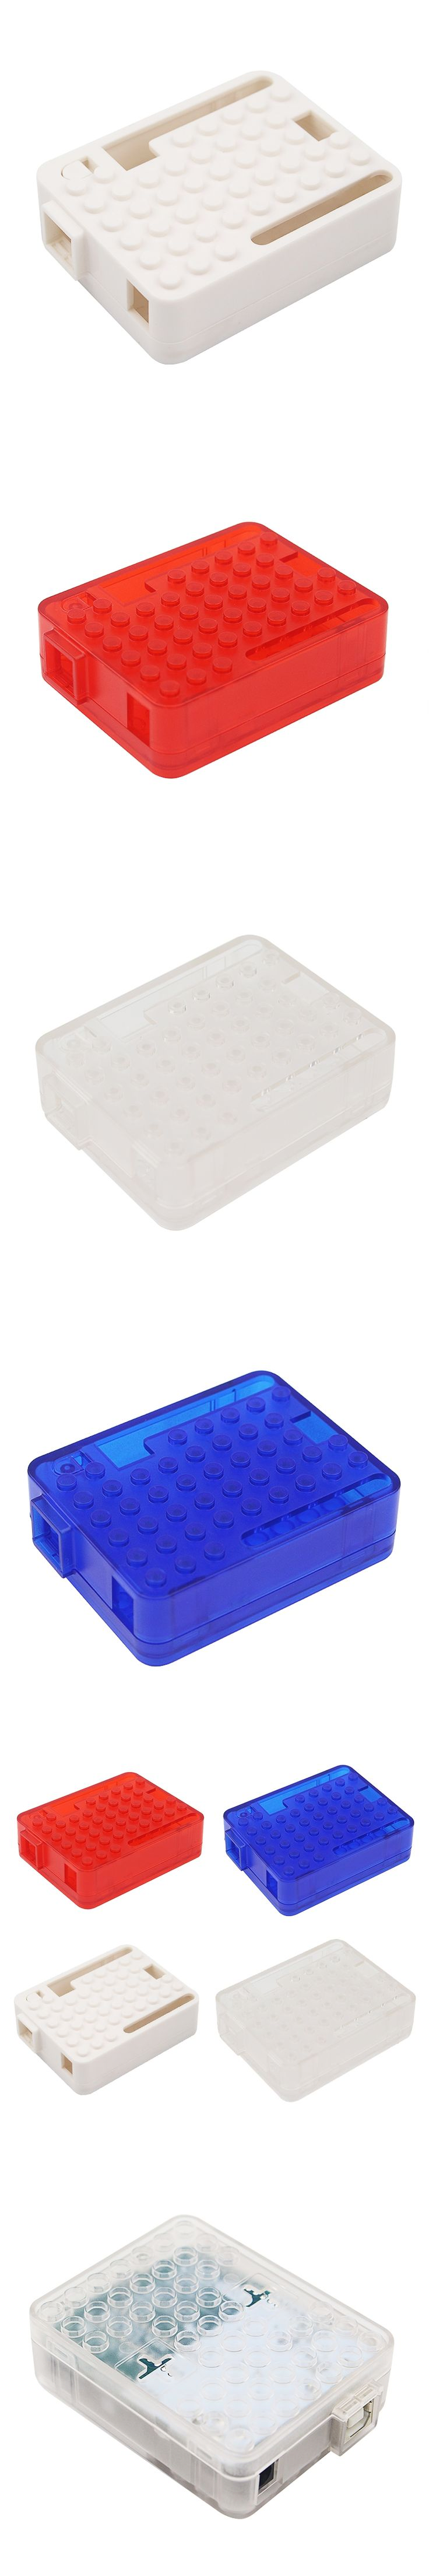 Newest ABS Case for UNO R3 Red Blue White Transparent Plastic Box Shell for Arduino UNO R3